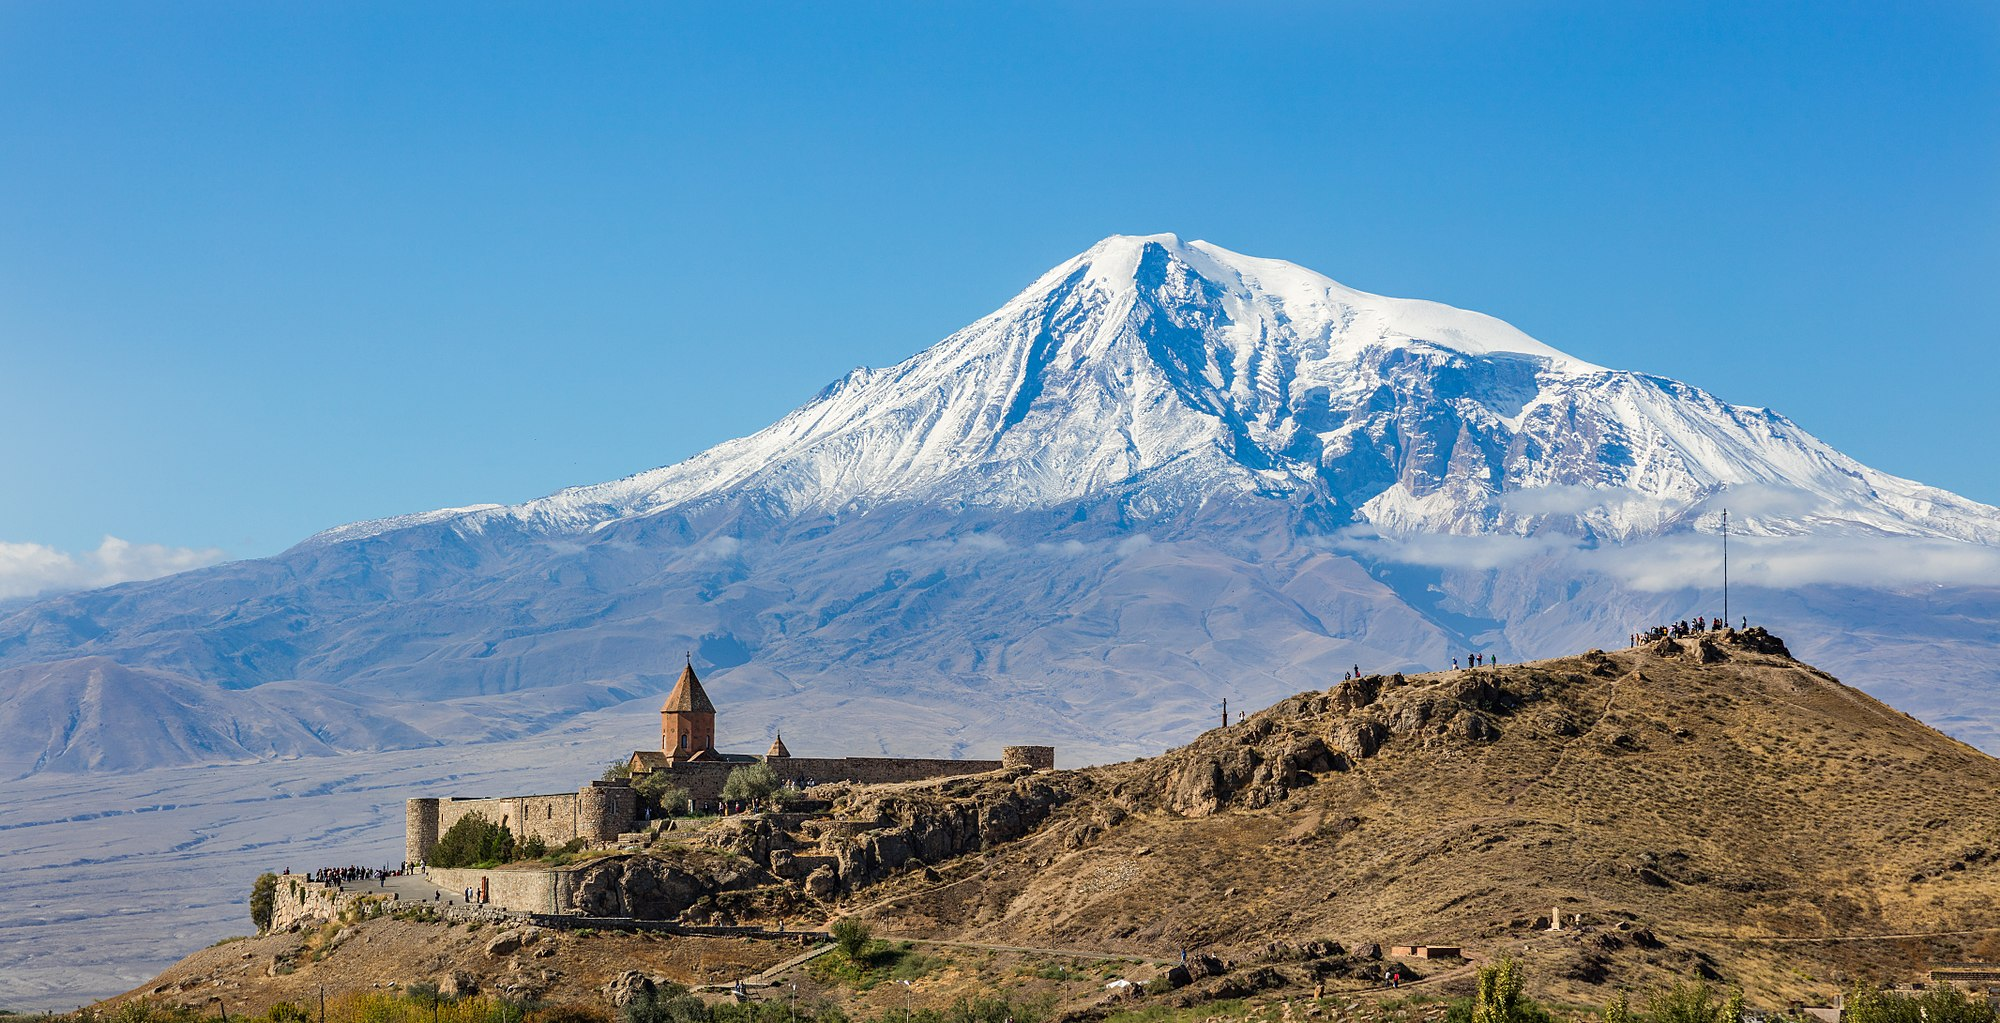 View of Khor Virap, an Armenian monastery and one of the most visited pilgrimage sites in Armenia located in the Ararat plain with the Mount Ararat in the background. Khor Virap's notability as a monastery and pilgrimage site is due to the fact that Gregory the Illuminator, religious leader who converted Armenia from paganism to Christianity in 301, becoming the first nation to adopt Christianity as its official religion, was initially imprisoned here for 14 years by King Tiridates III of Armenia. A chapel was initially built in 642 by Nerses III the Builder as a mark of veneration to Saint Gregory. Over the centuries, it was repeatedly rebuilt and the current appearance dates from 1662.